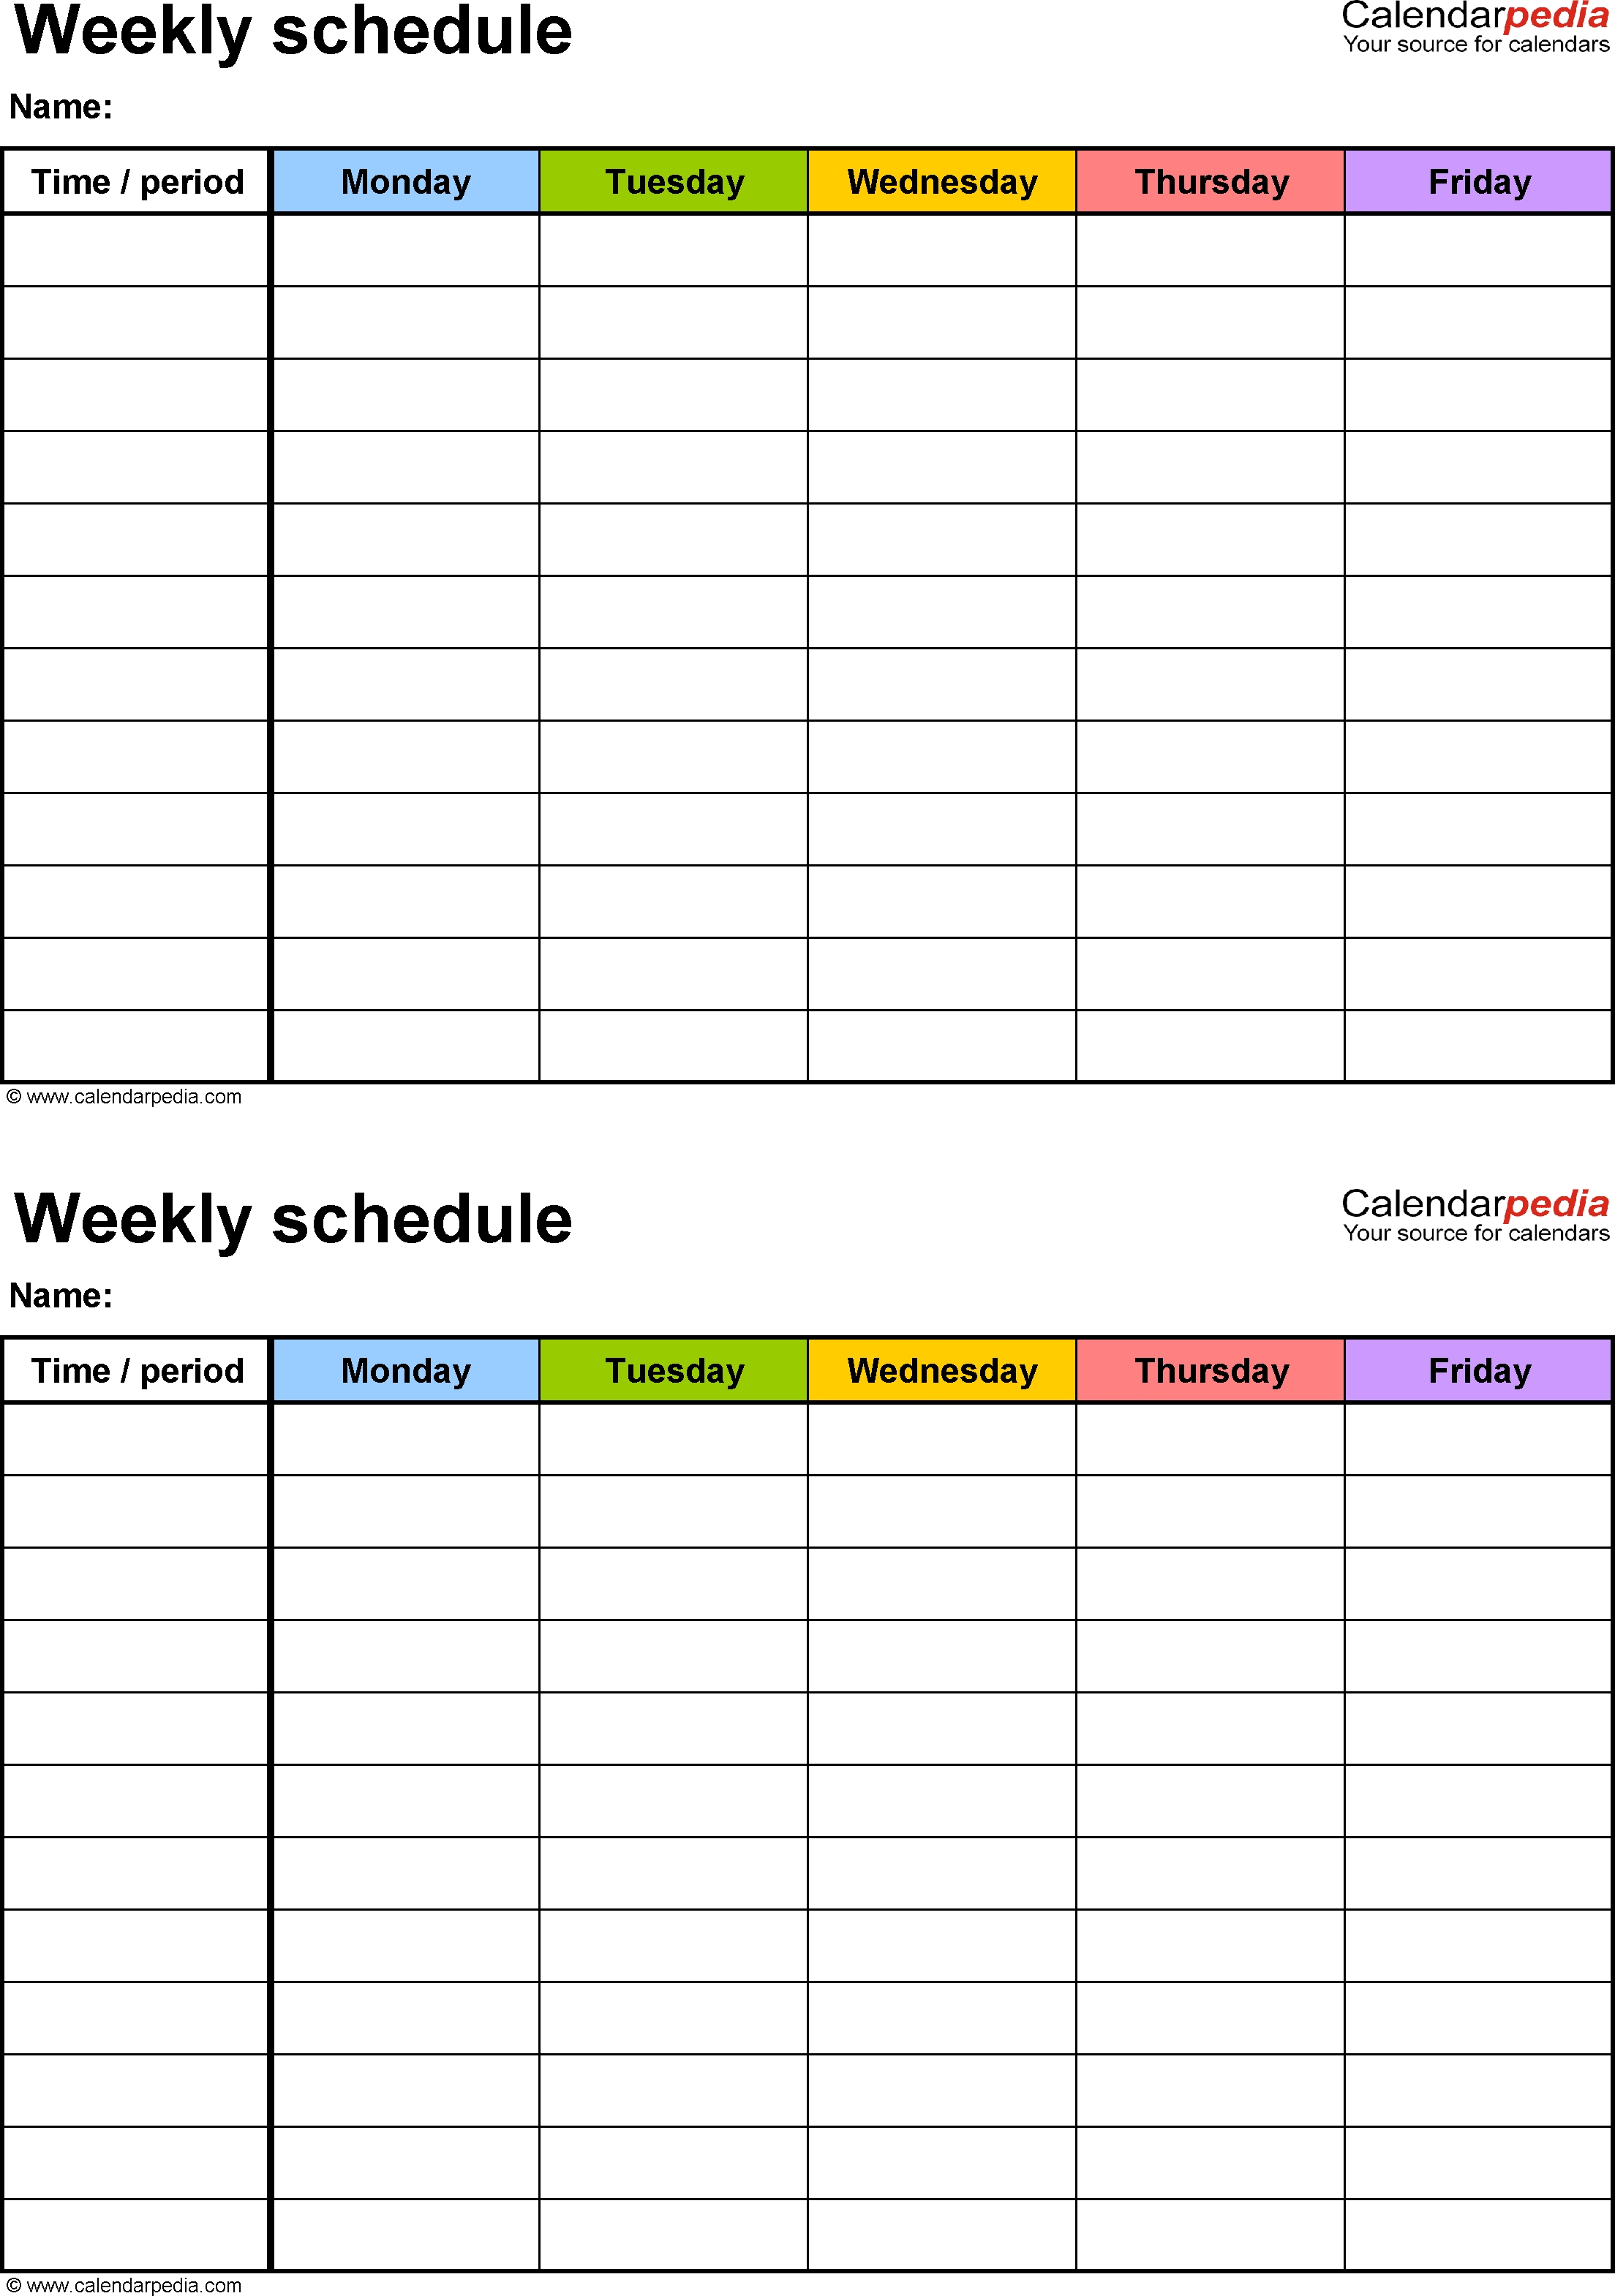 Free Weekly Schedule Templates For Word - 18 Templates 6 Week Calendar Template Word